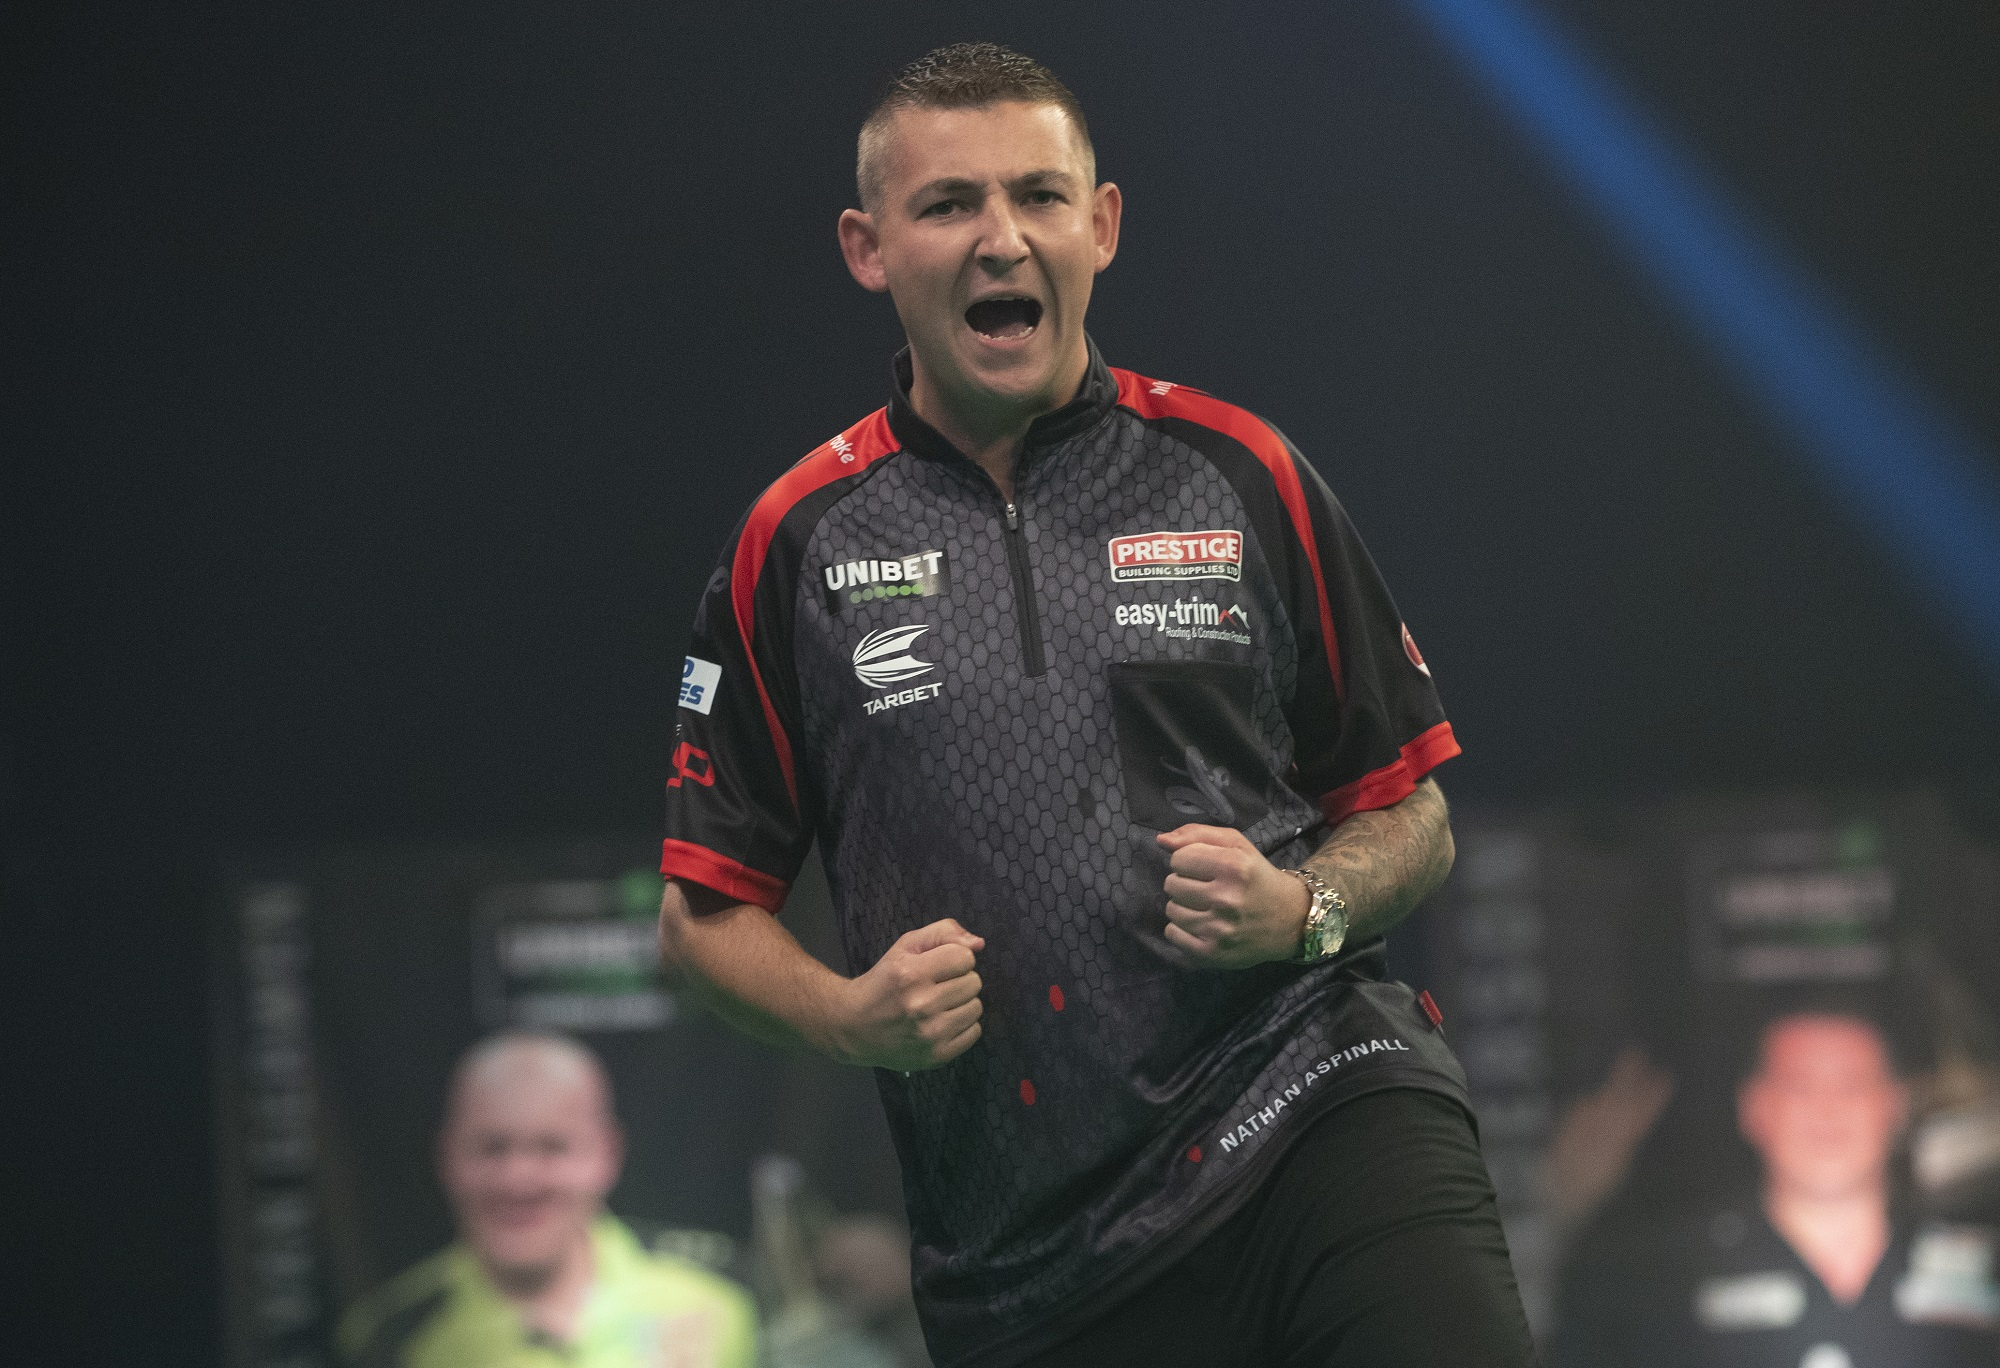 """Premier League Darts 2021 Preview: """"Nathan Aspinall is once again an underdog, a position he thrives in"""""""